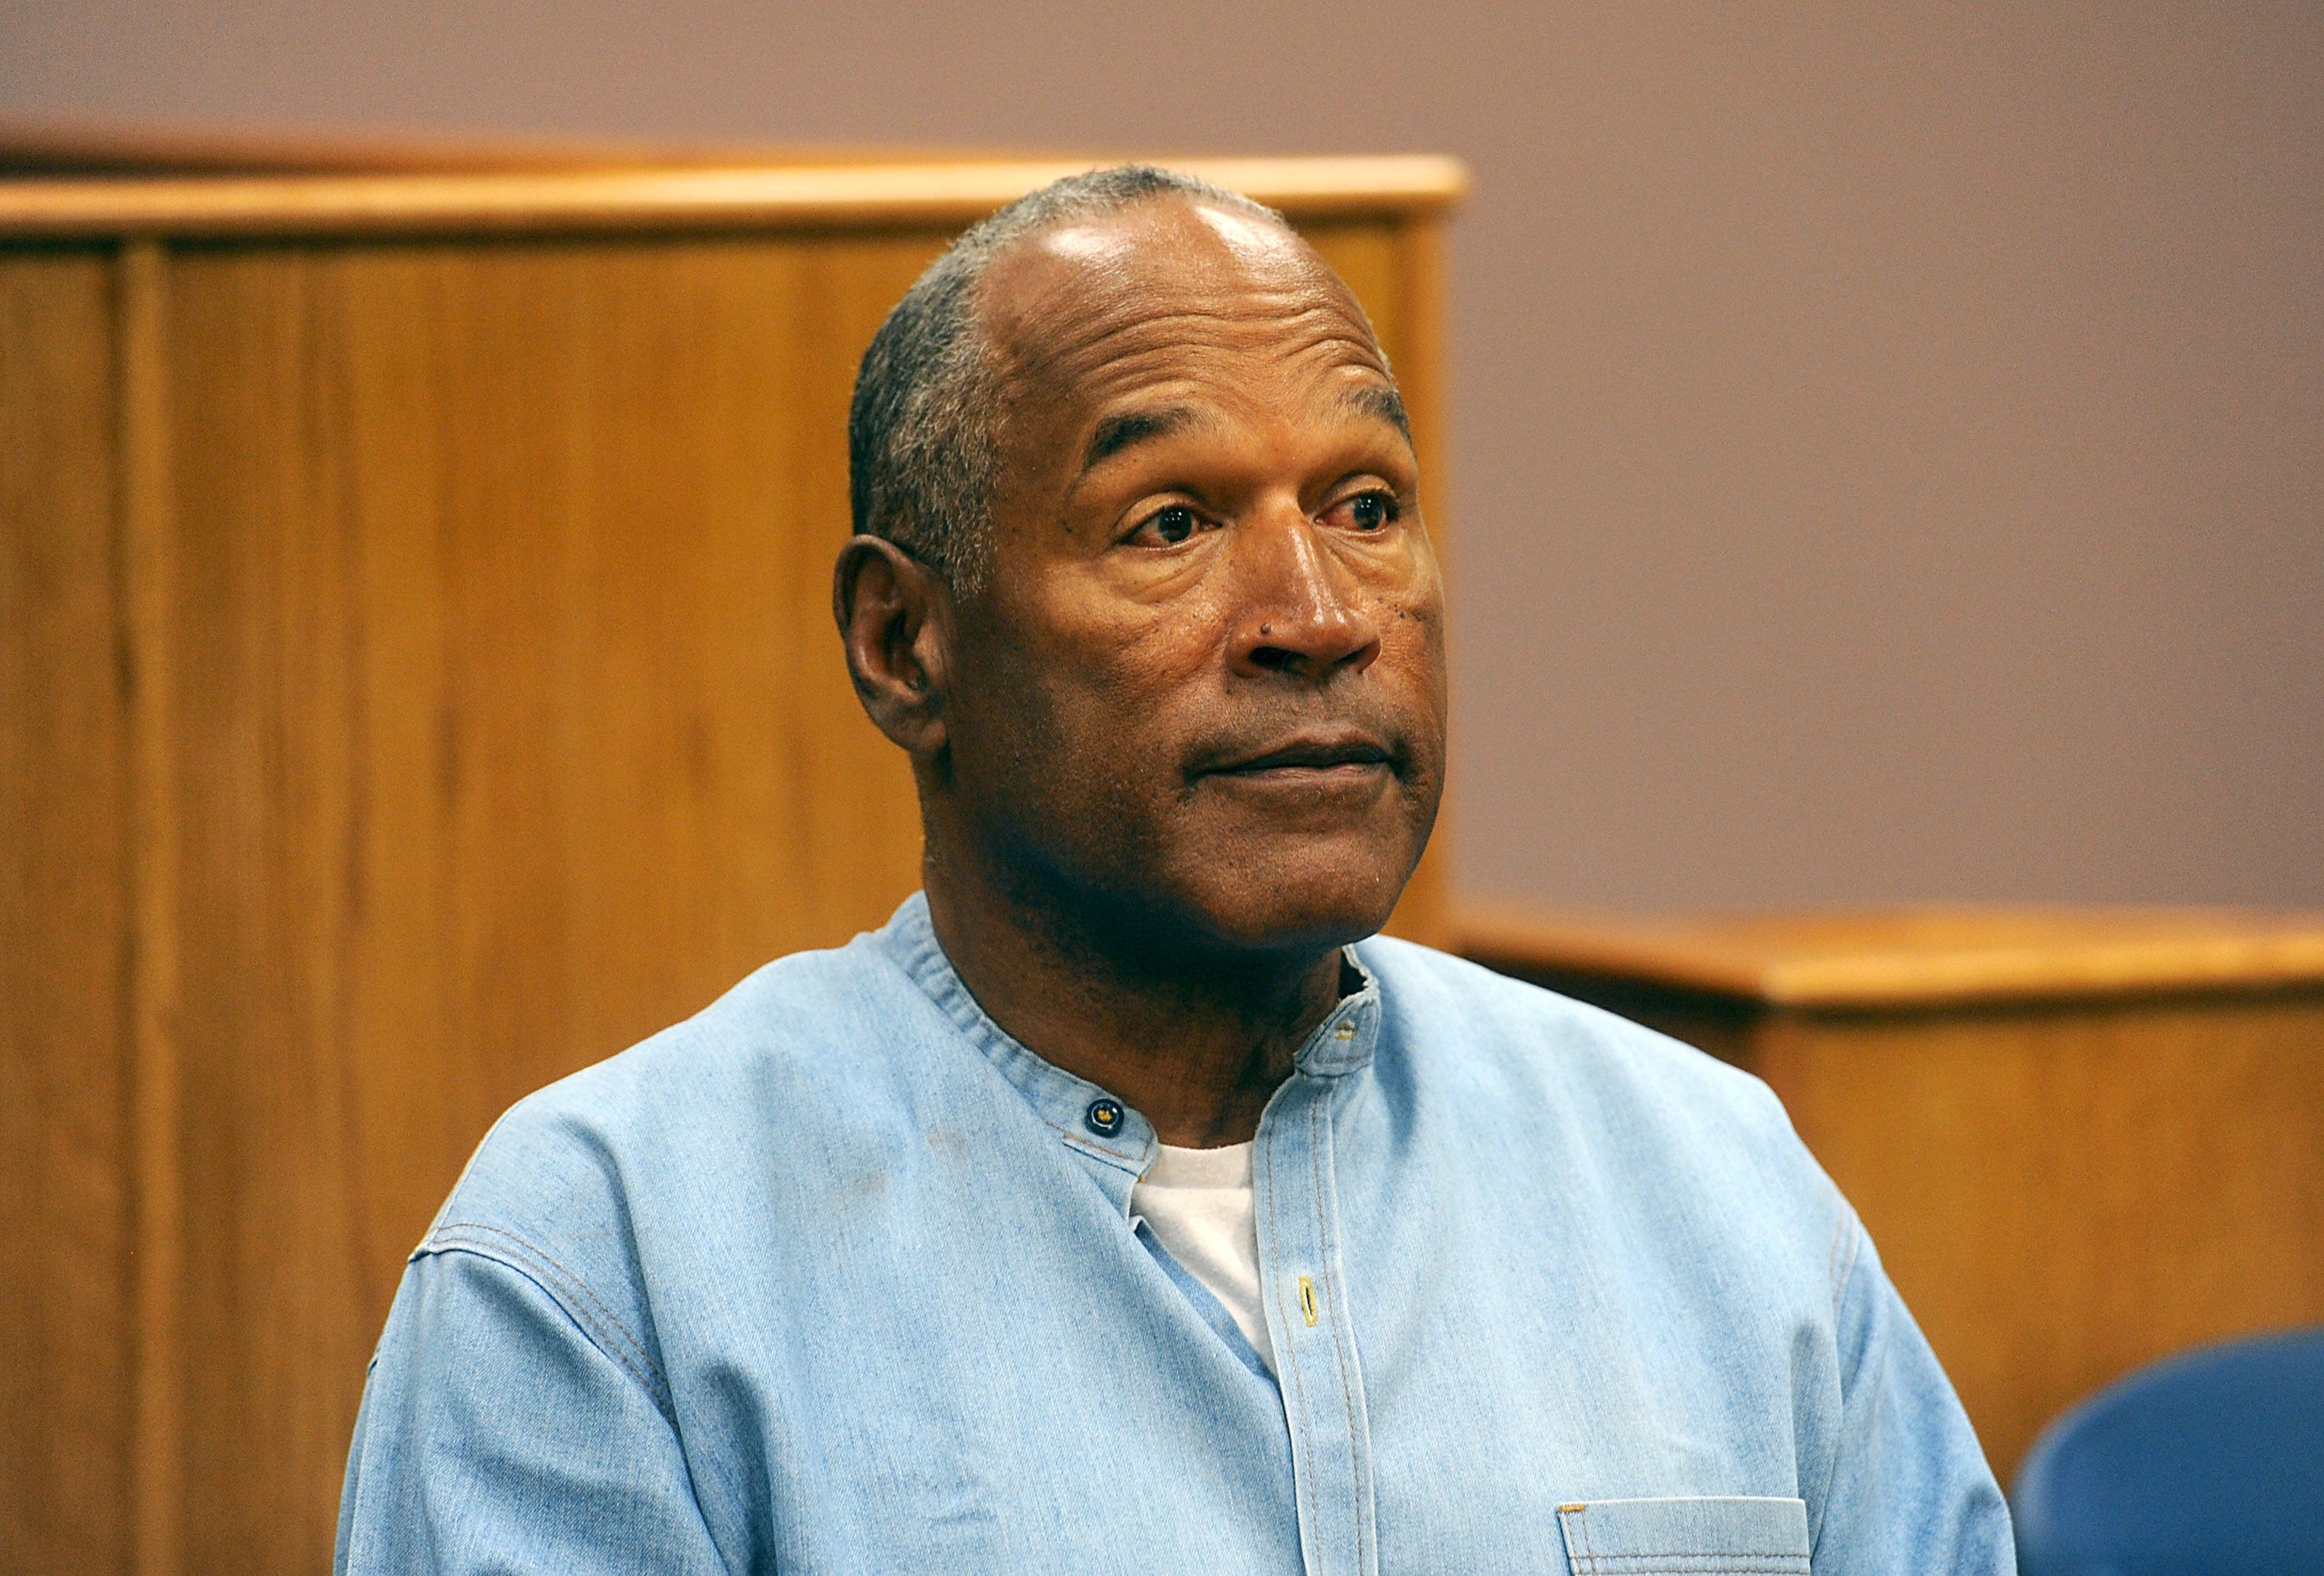 'Simpsons' Producer Reveals O.J. Simpson Almost Cameoed In 'Dental Plan'